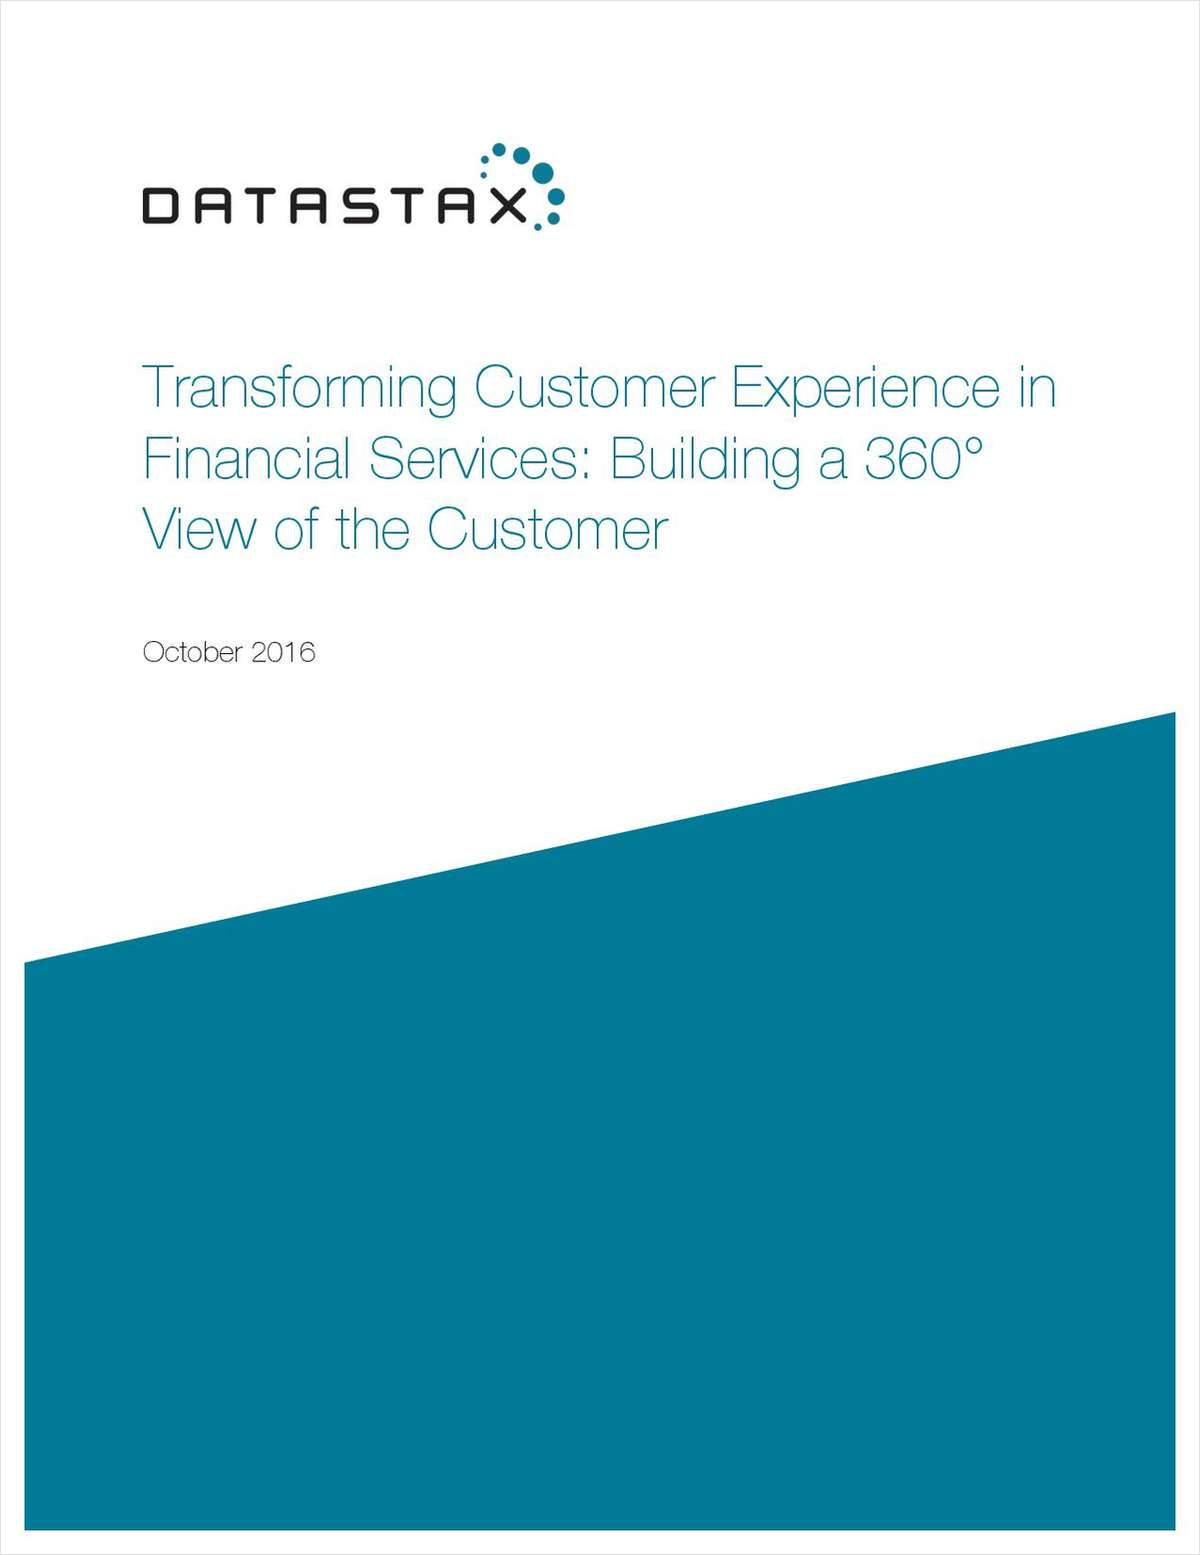 Transforming Customer Experience in Financial Services: Building a 360° View of the Customer